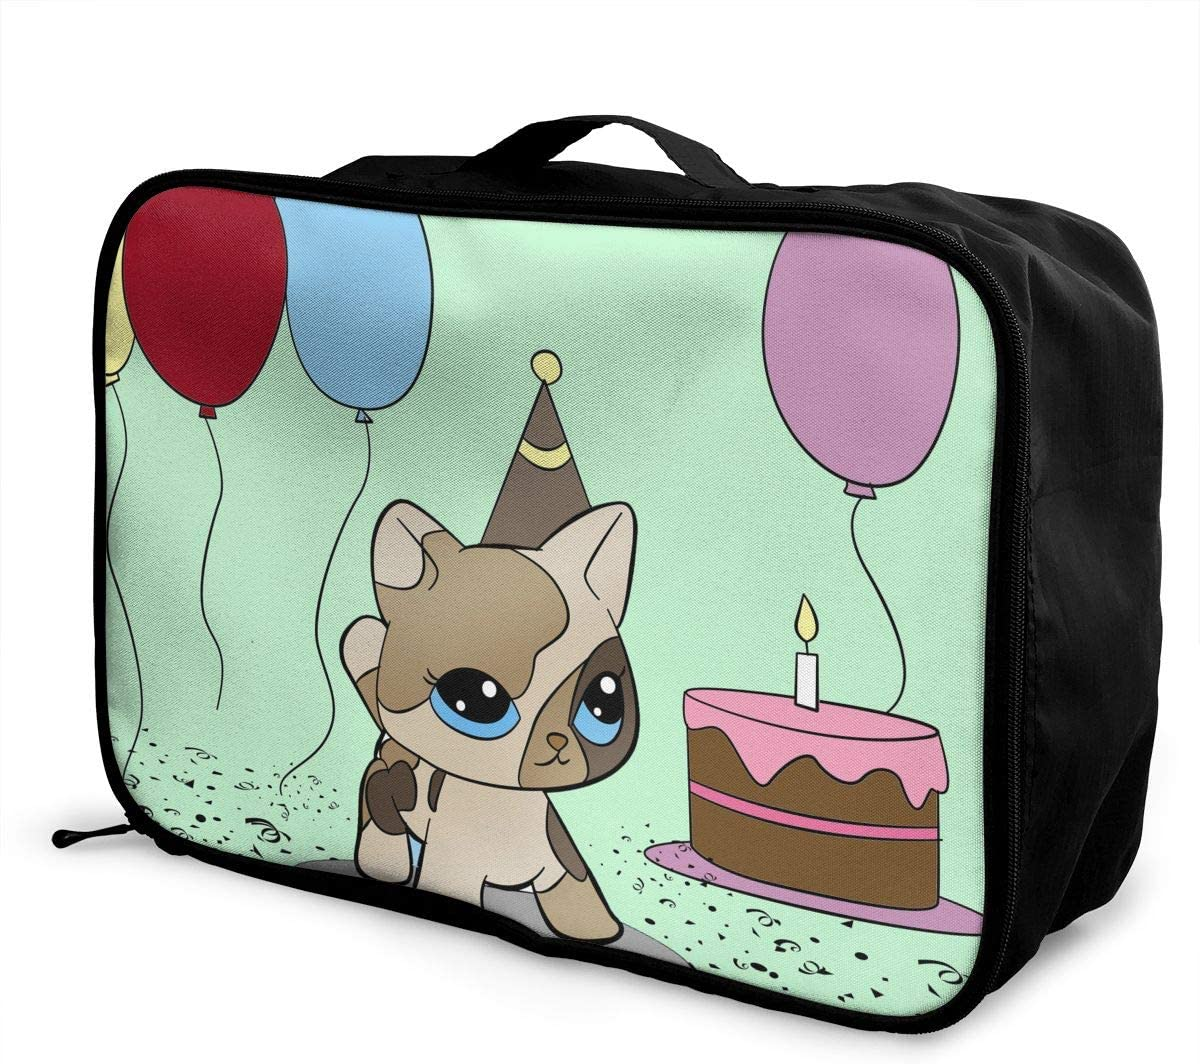 Cat For Birthday Travel Carry-on Luggage Weekender Bag Overnight Tote Flight Duffel In Trolley Handle